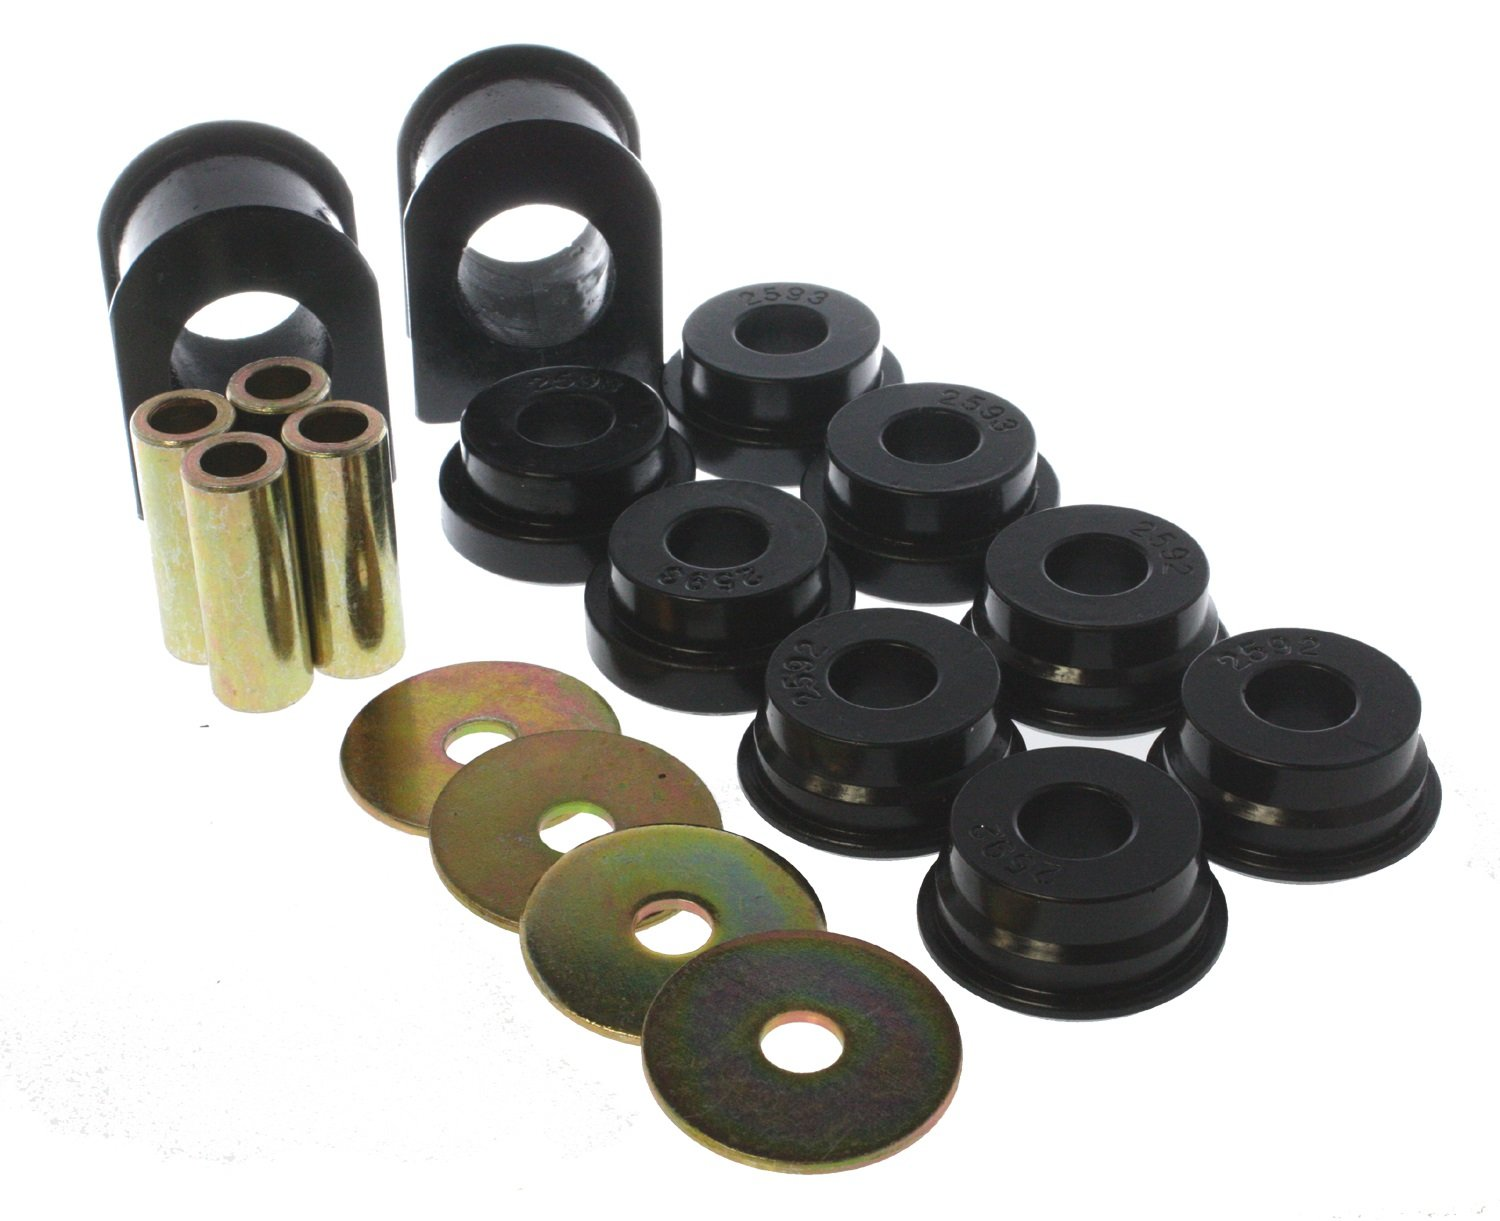 Energy Suspension 4.5186 G 32 mm vorne Sway Bar Set von Energy Suspension